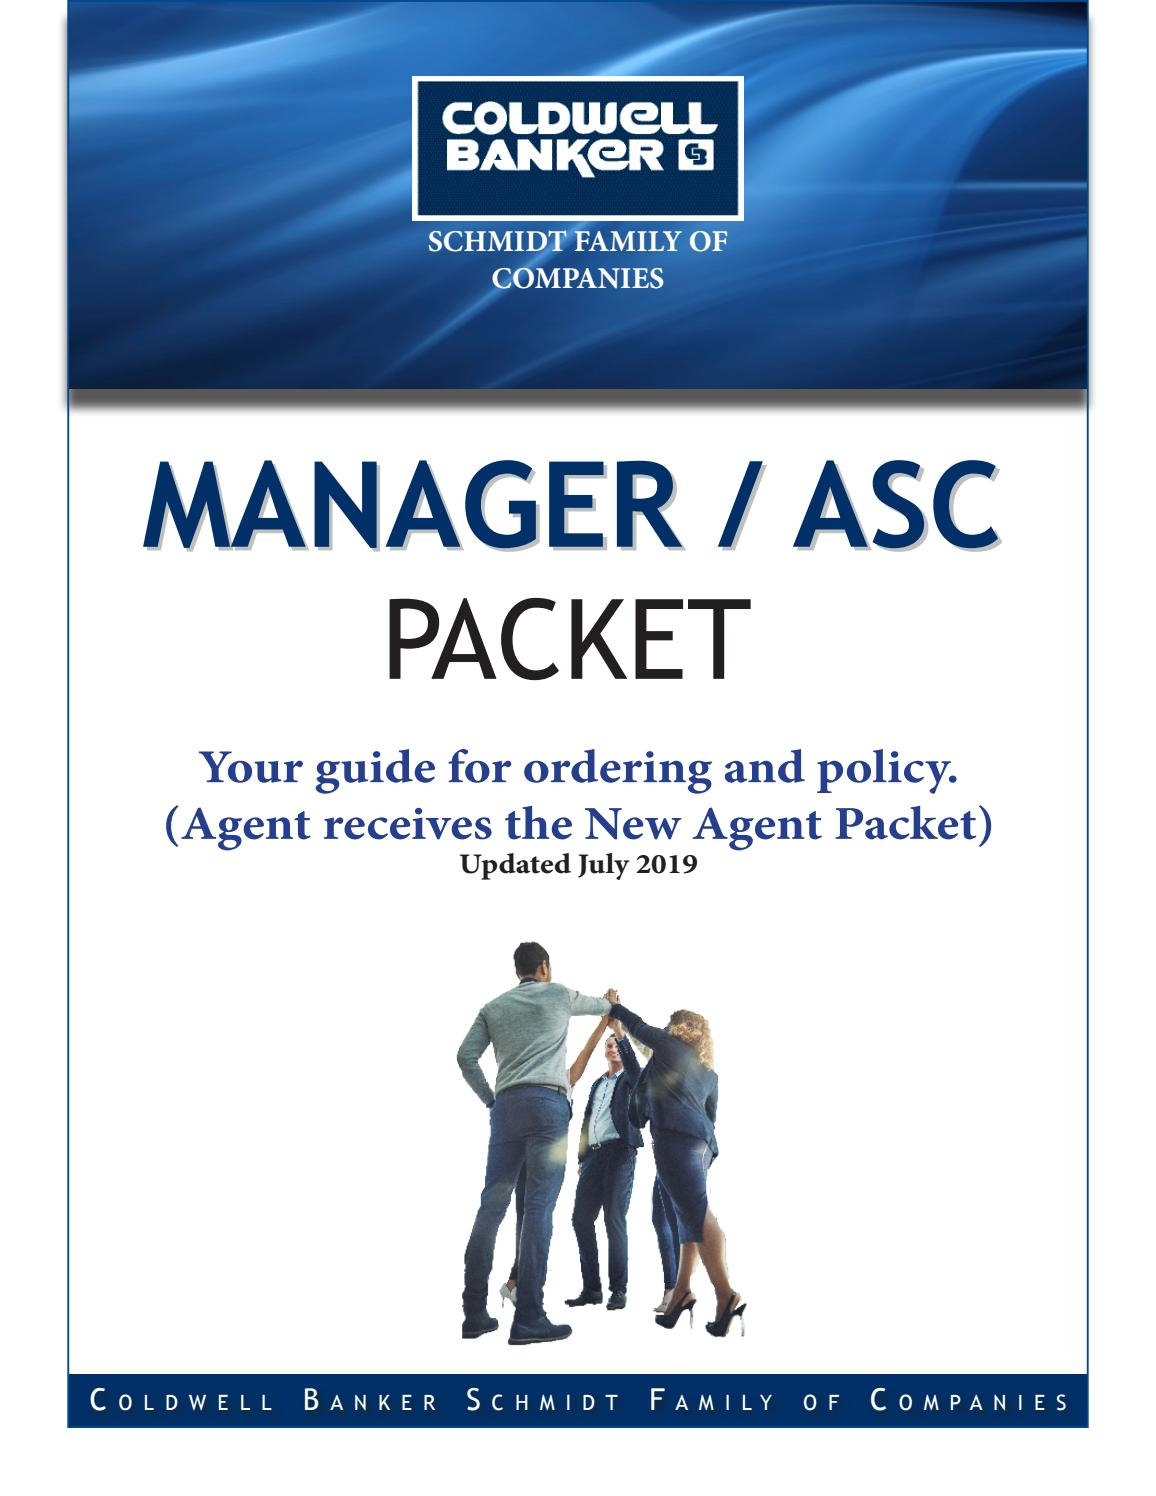 Manager/ASC guide: New Agent Packet - Updated December 21 by For Coldwell Banker Business Card Template